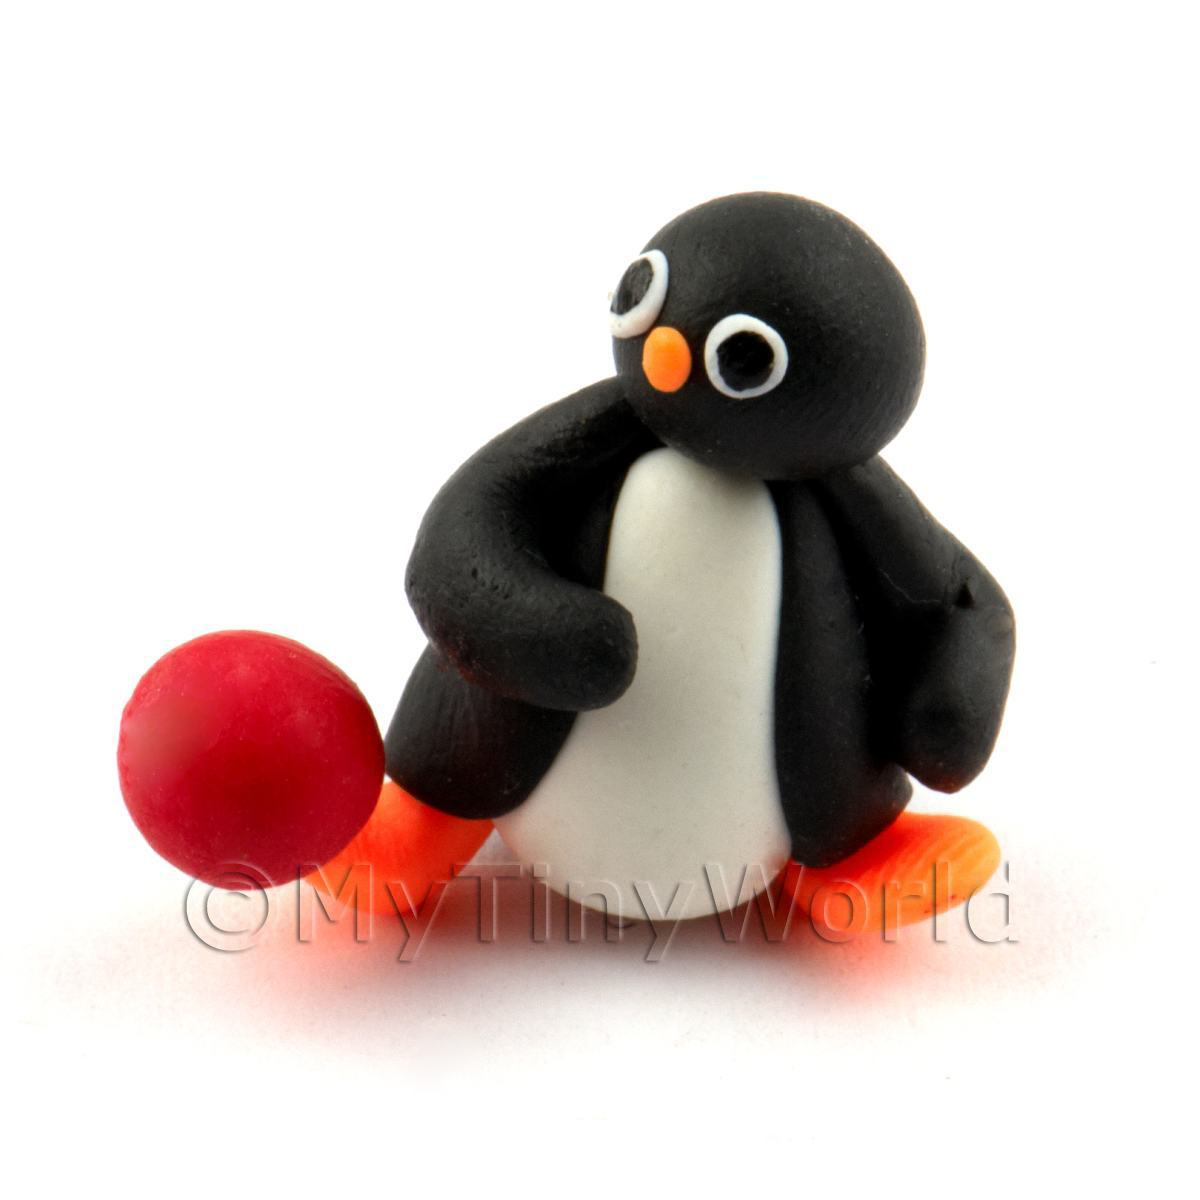 Dolls House Miniature Fun Penguin Figurine (8)